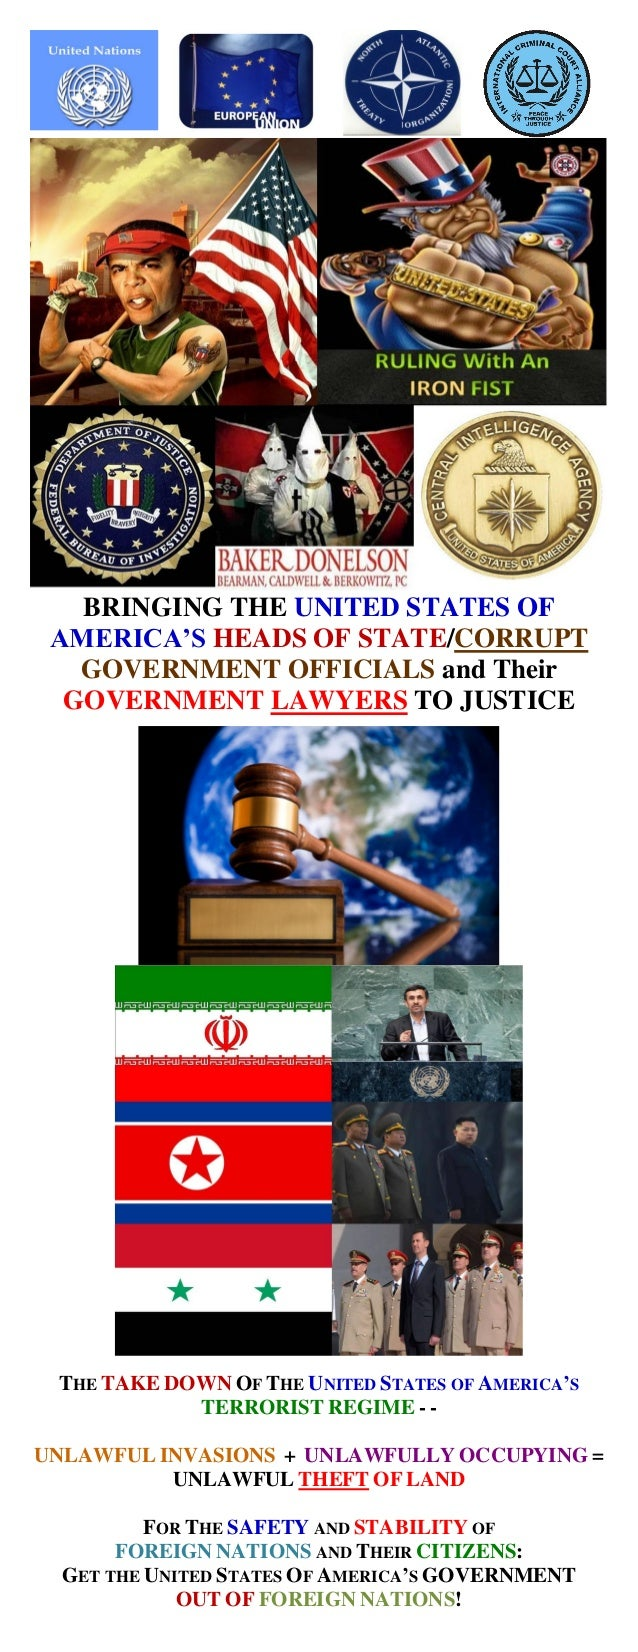 BRINGING THE UNITED STATES OF AMERICA'S HEADS OF STATE/CORRUPT GOVERNMENT OFFICIALS and Their GOVERNMENT LAWYERS TO JUSTIC...